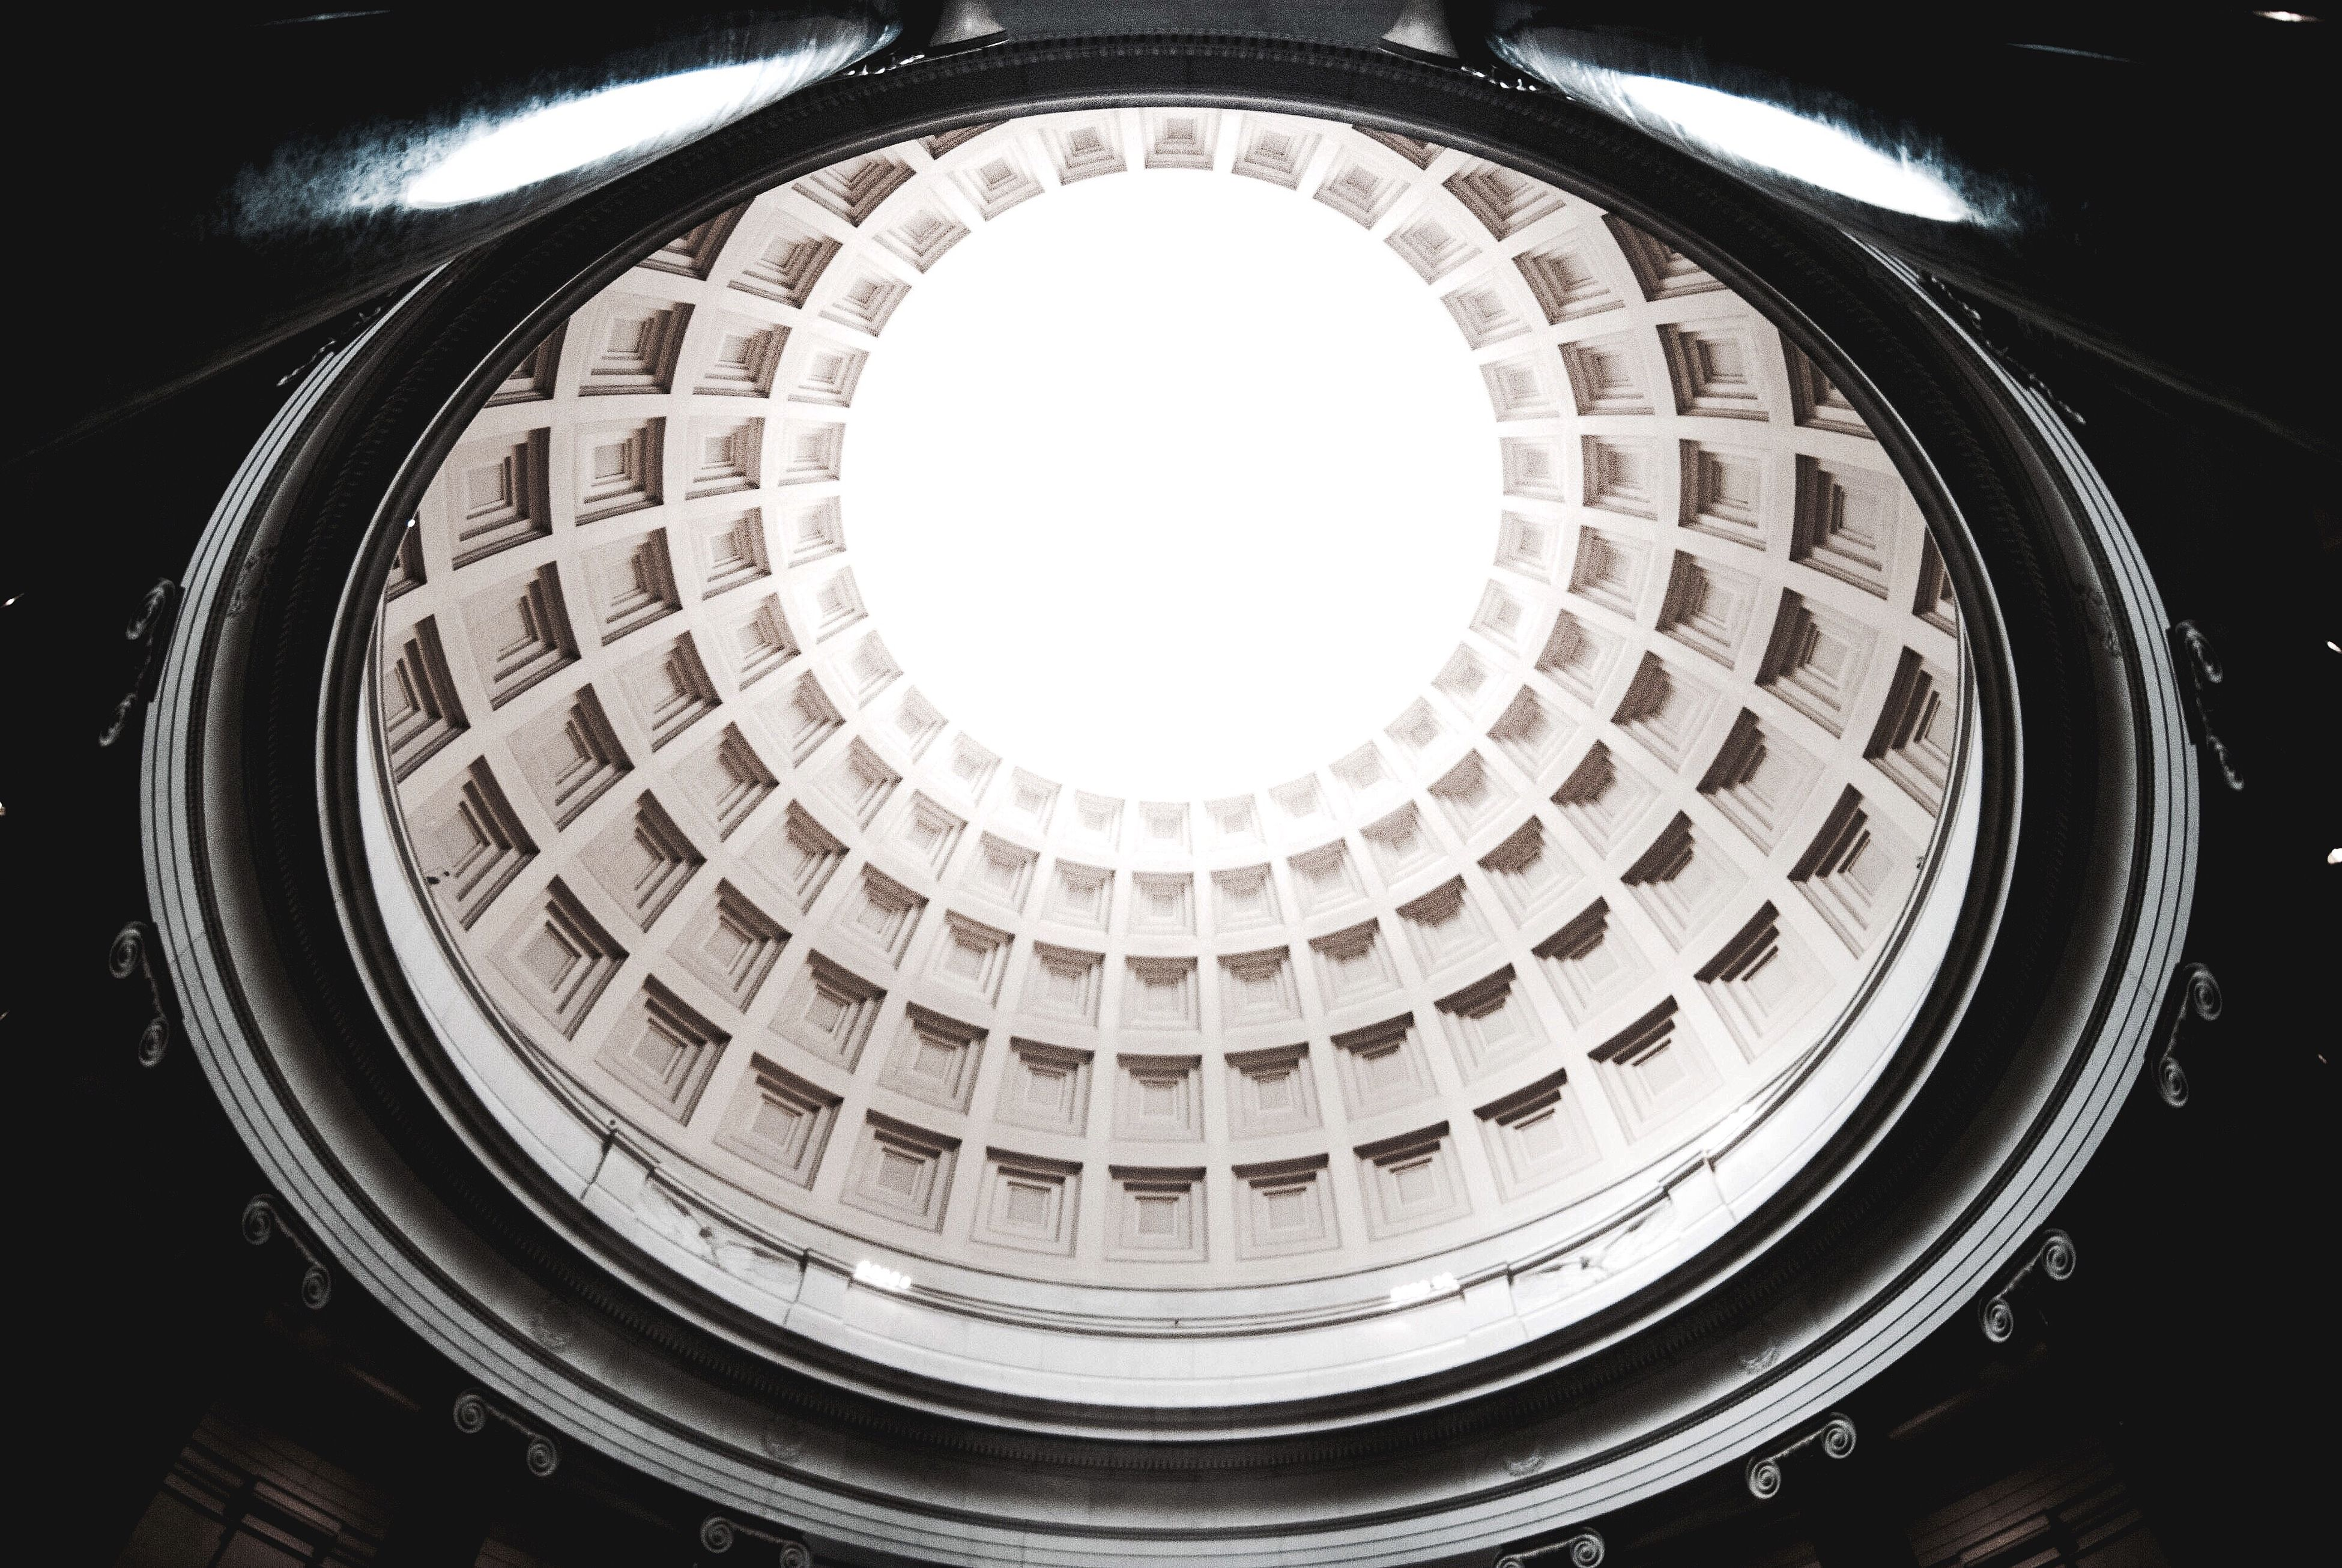 architecture, built structure, low angle view, architectural feature, circle, geometric shape, ceiling, skylight, directly below, indoors, design, building exterior, sky, repetition, day, dome, architectural design, modern, concentric, curve, architecture and art, creativity, building story, famous place, cupola, circular, no people